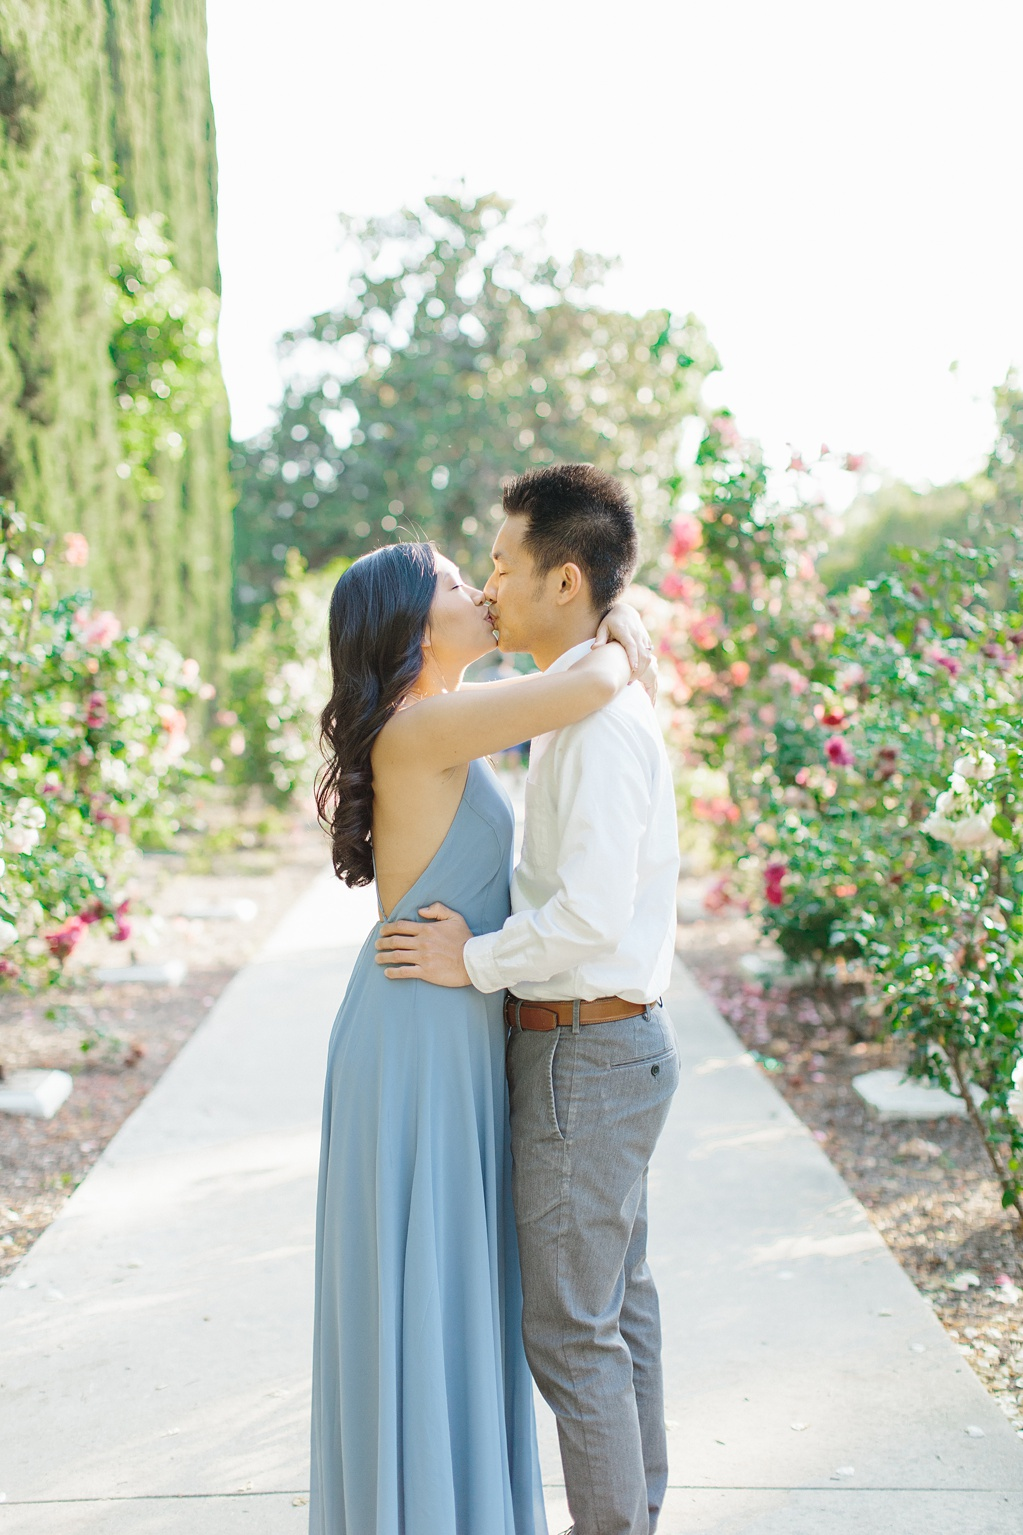 Elegant rose garden engagement shoot at Lacy Park in Pasadena by LA wedding photographer-Madison Ellis Photography (65)